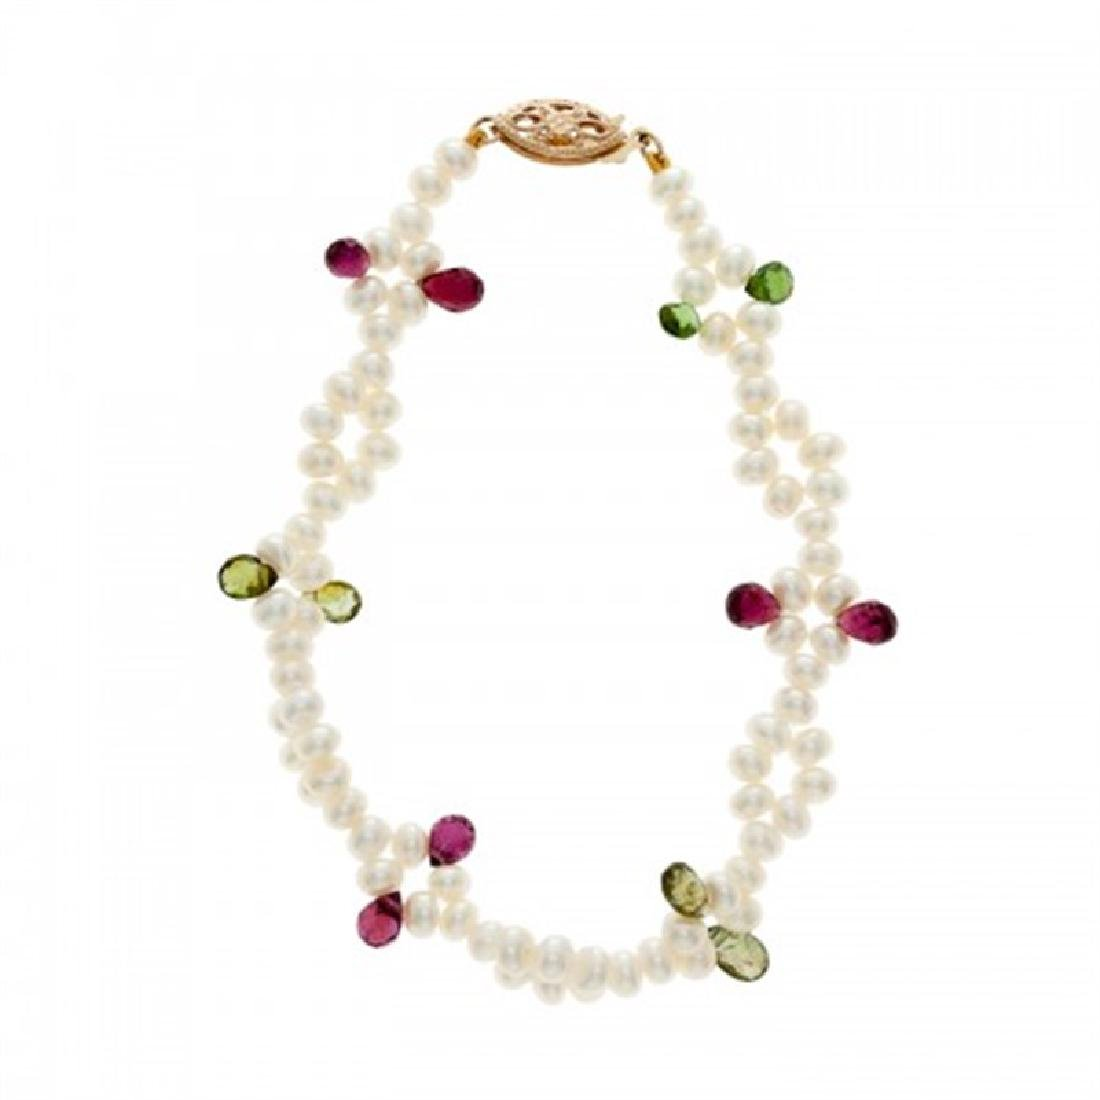 4.0-4.5mm Freshwater Pearl Bracelet with Tourmaline